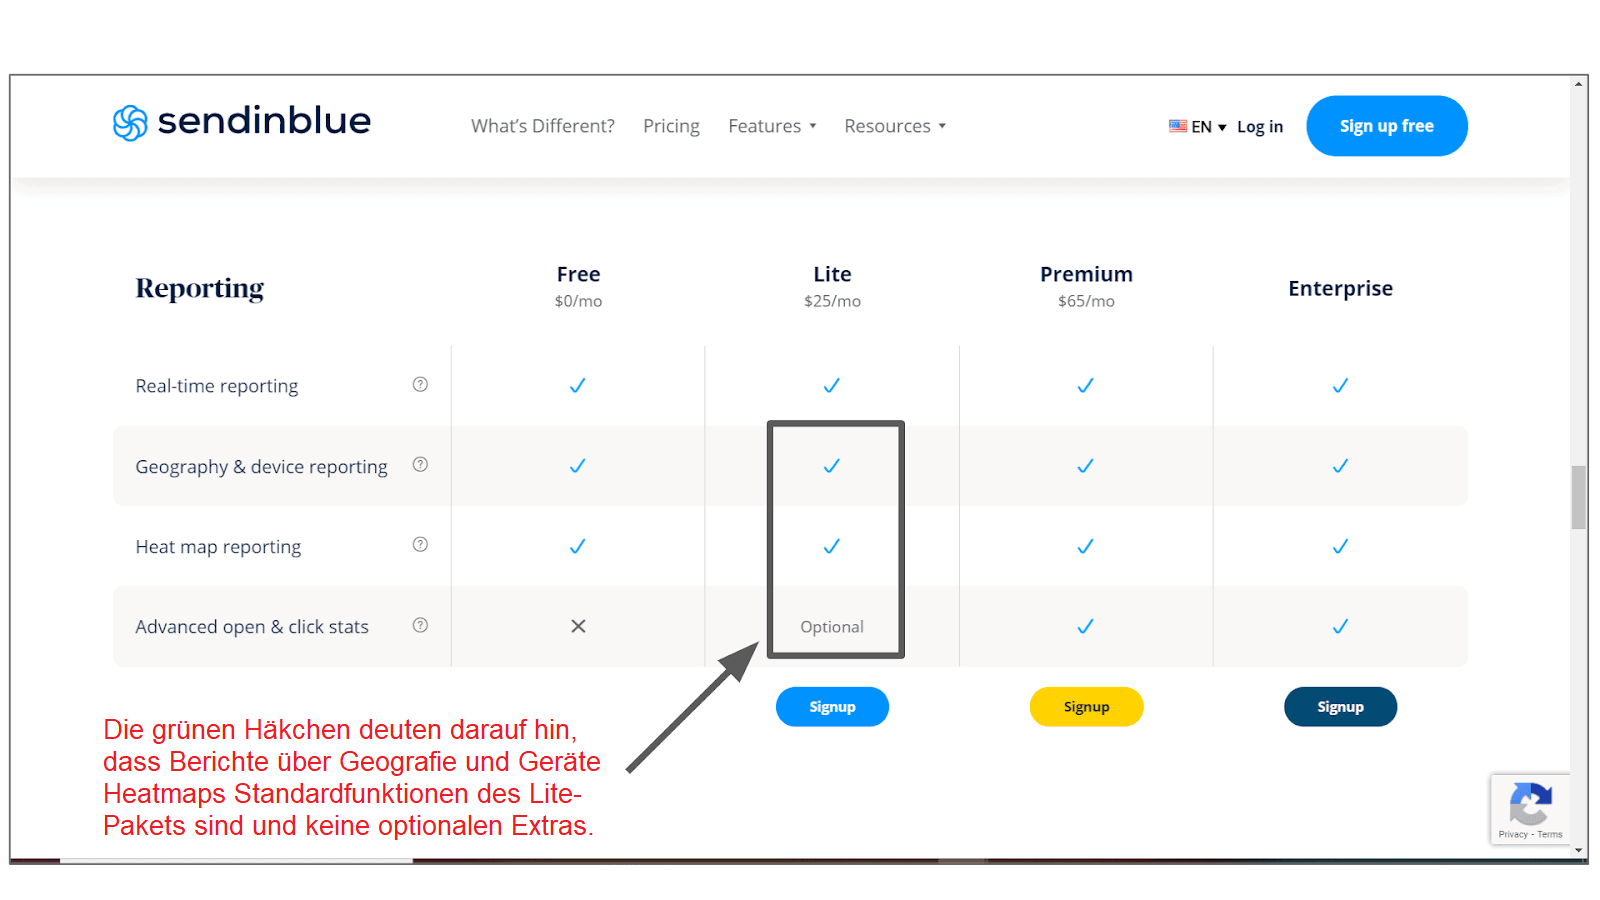 Sendinblue subscription features summary